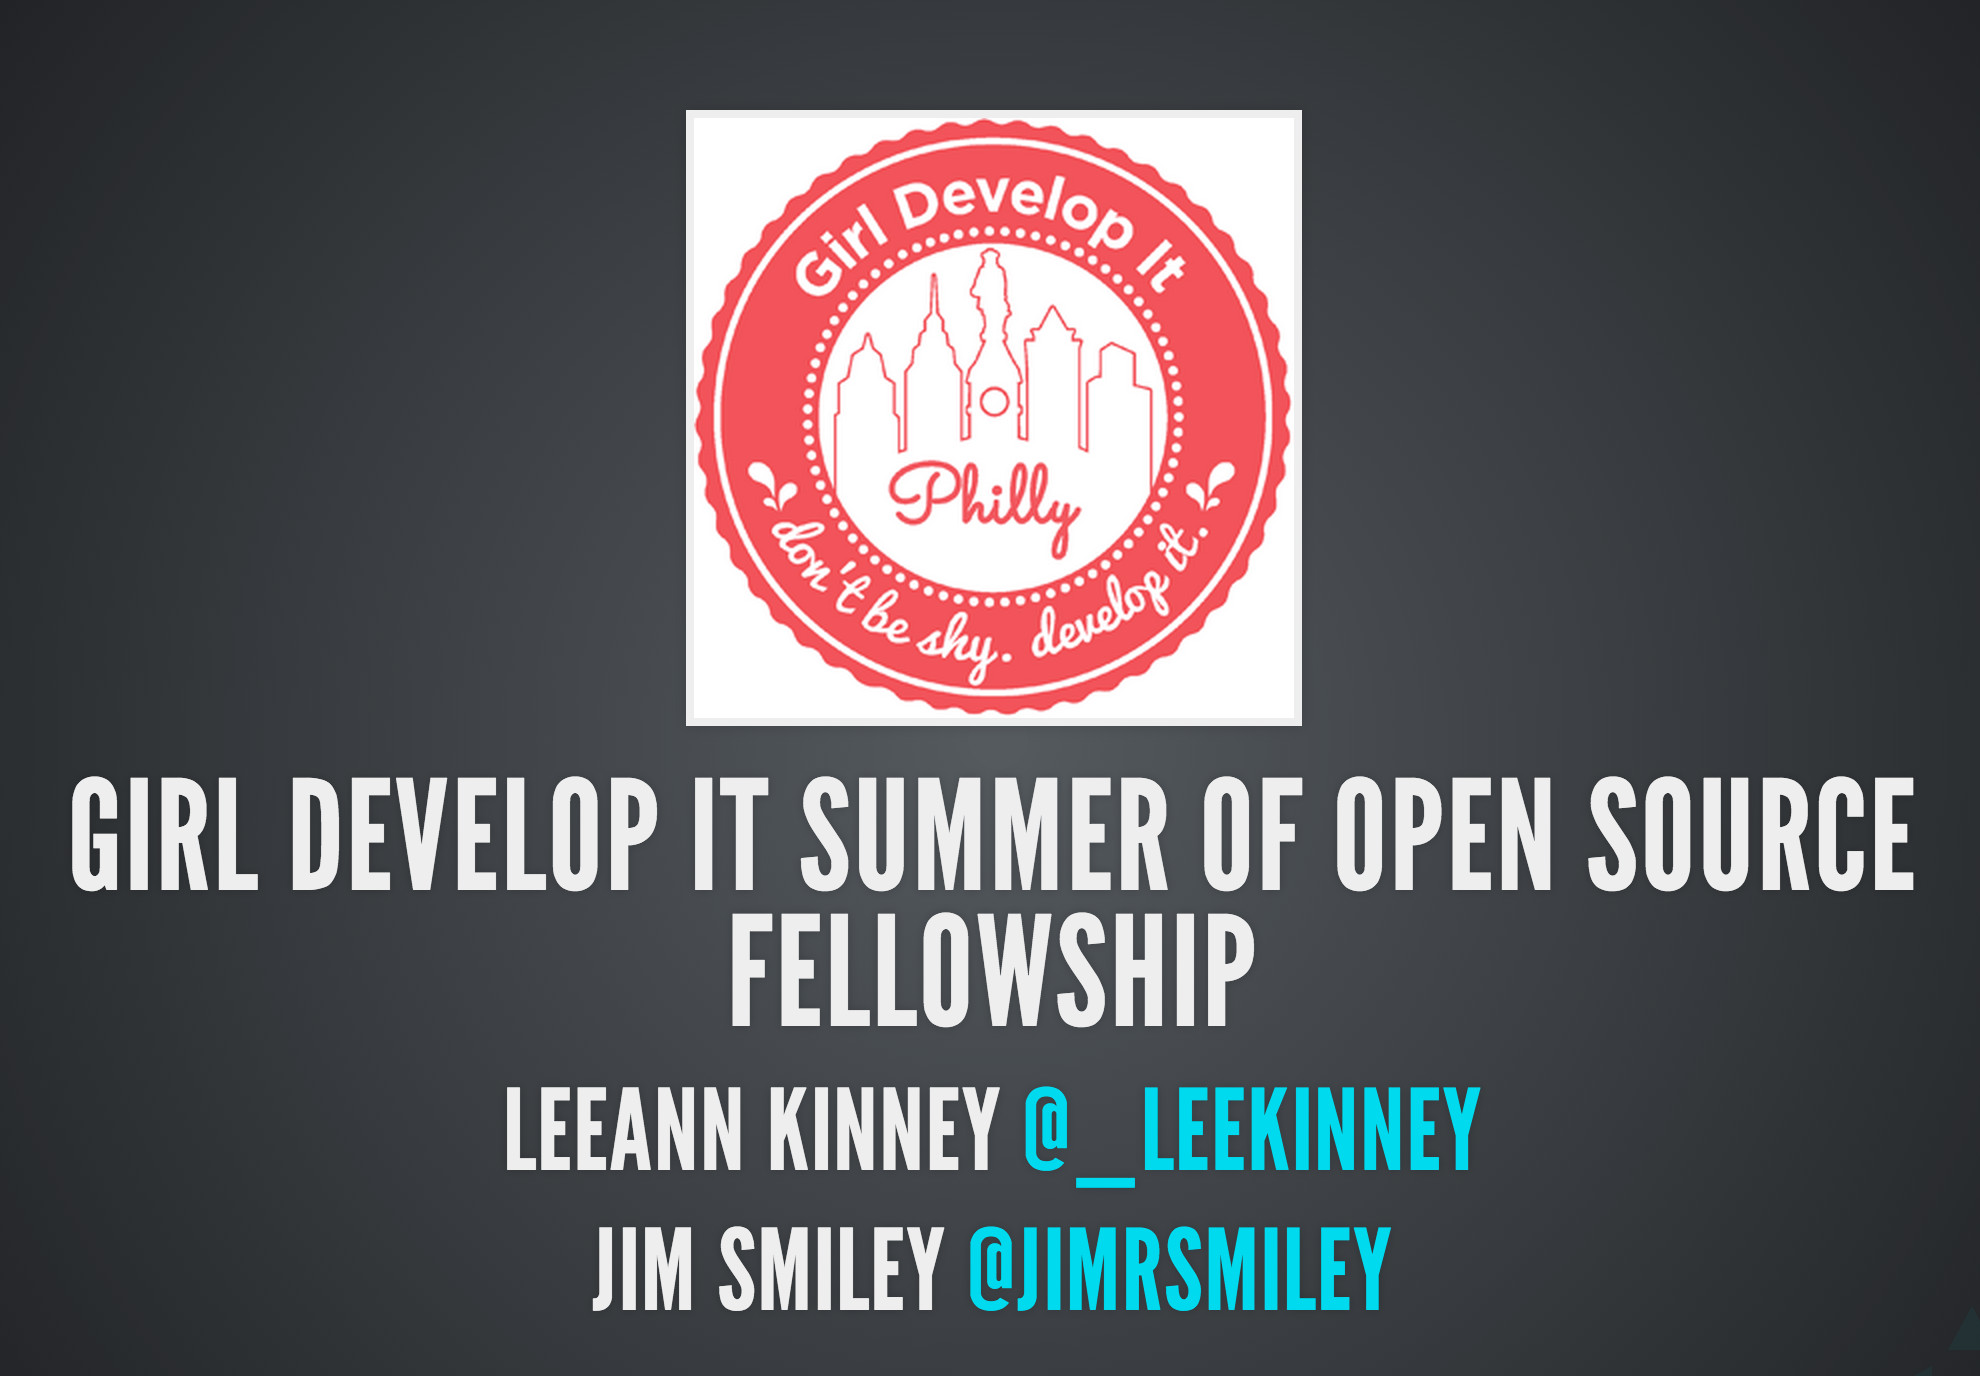 Girl Develop It Summer of Open Source – LeeAnn Kinney and Jim Smiley